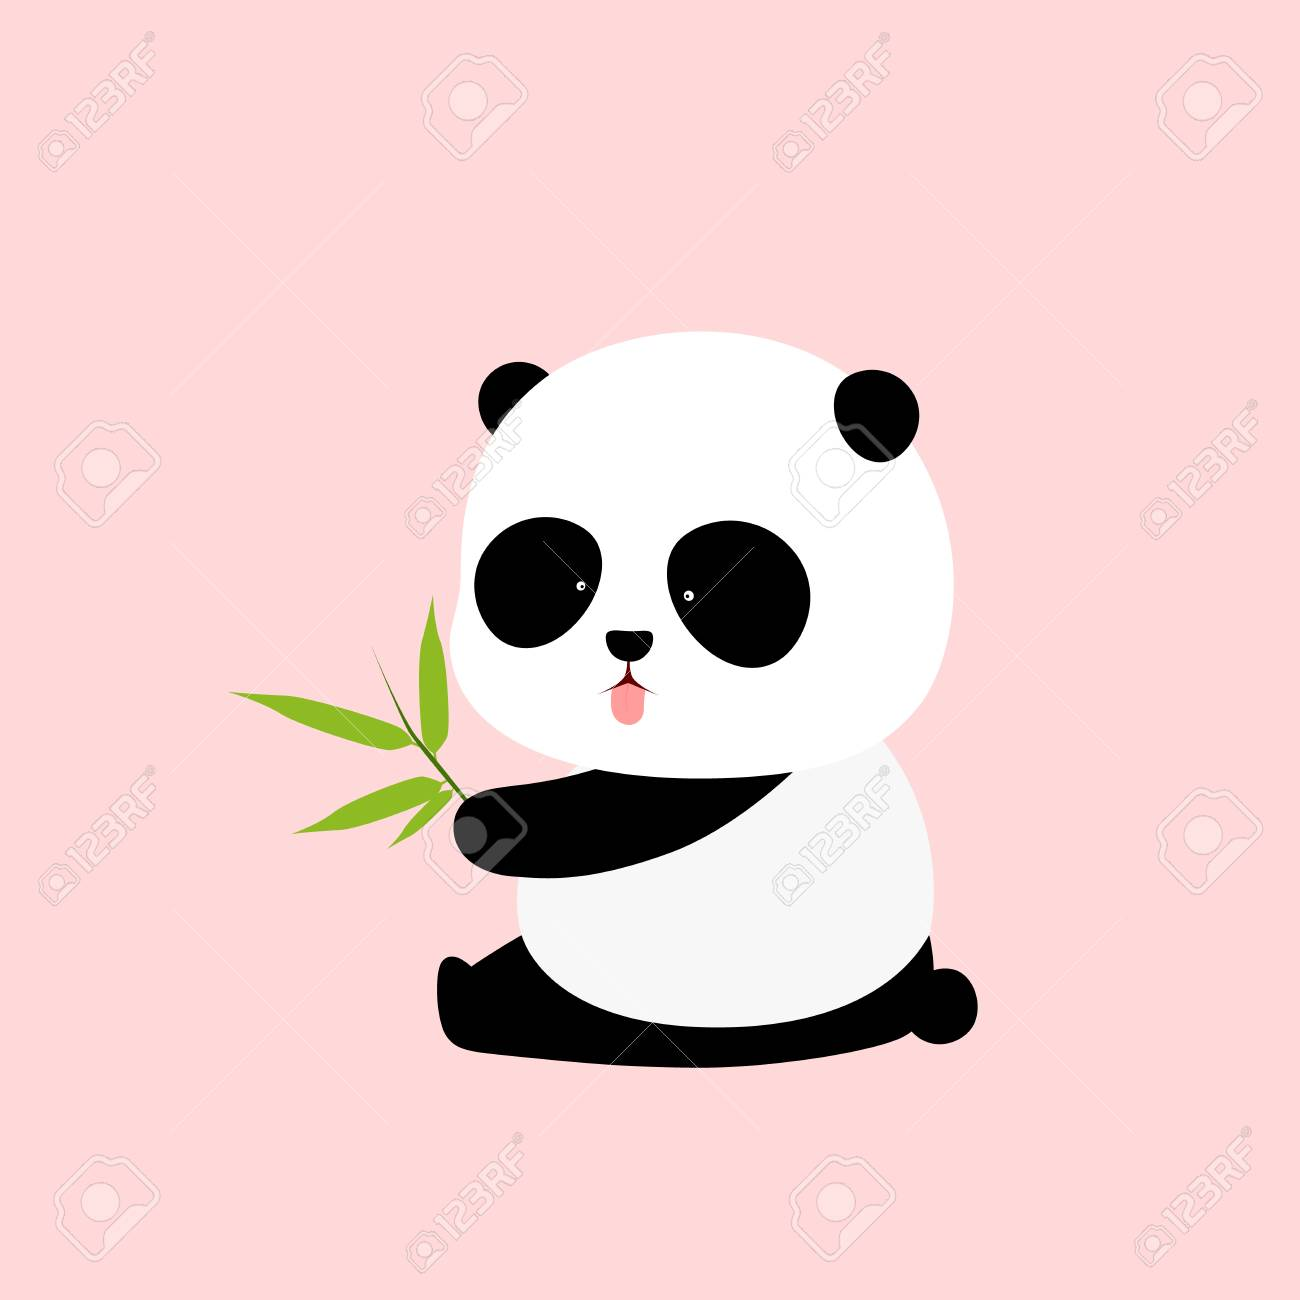 A Cute Cartoon Giant Panda Is Sitting On The Ground Sticking Royalty Free Cliparts Vectors And Stock Illustration Image 103216780